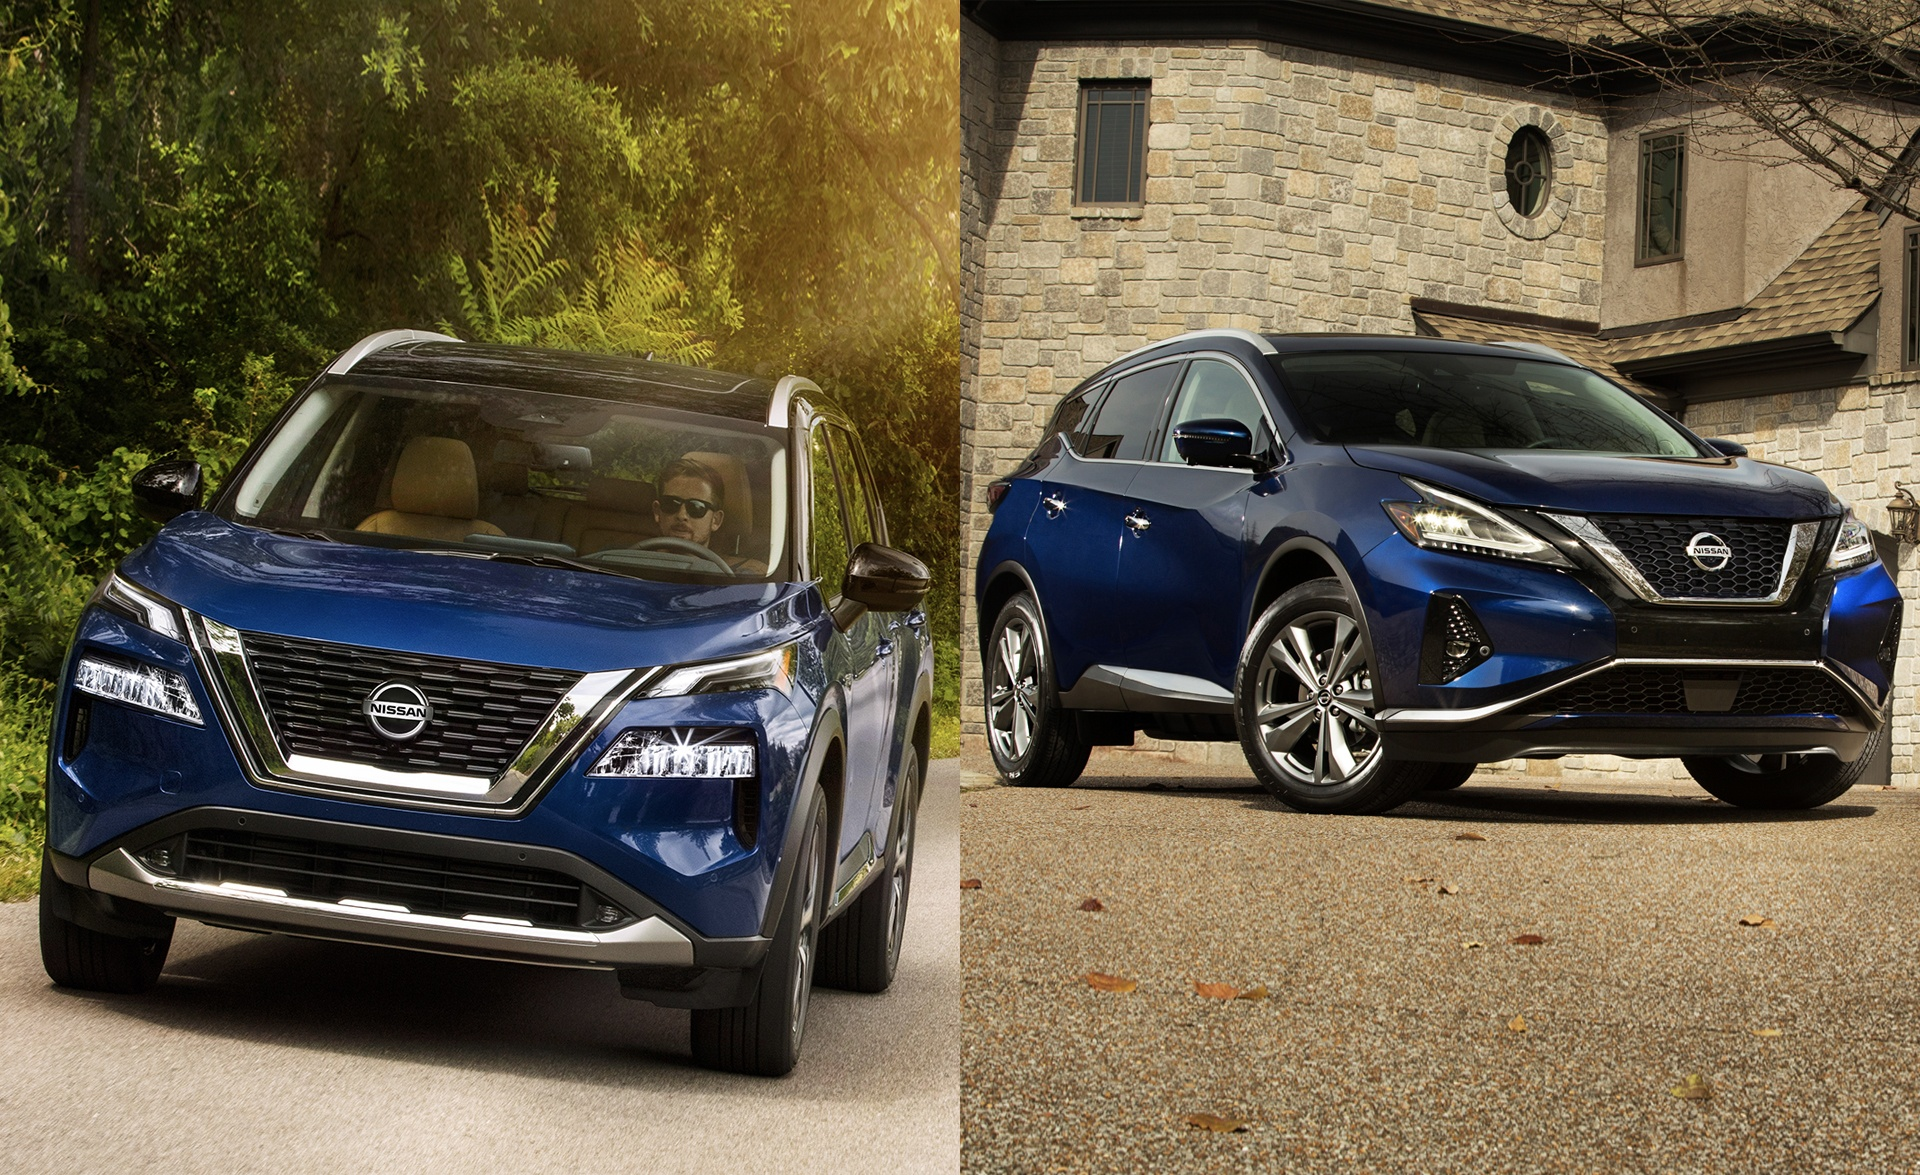 2021 Nissan Rogue vs Nissan Murano Comparison